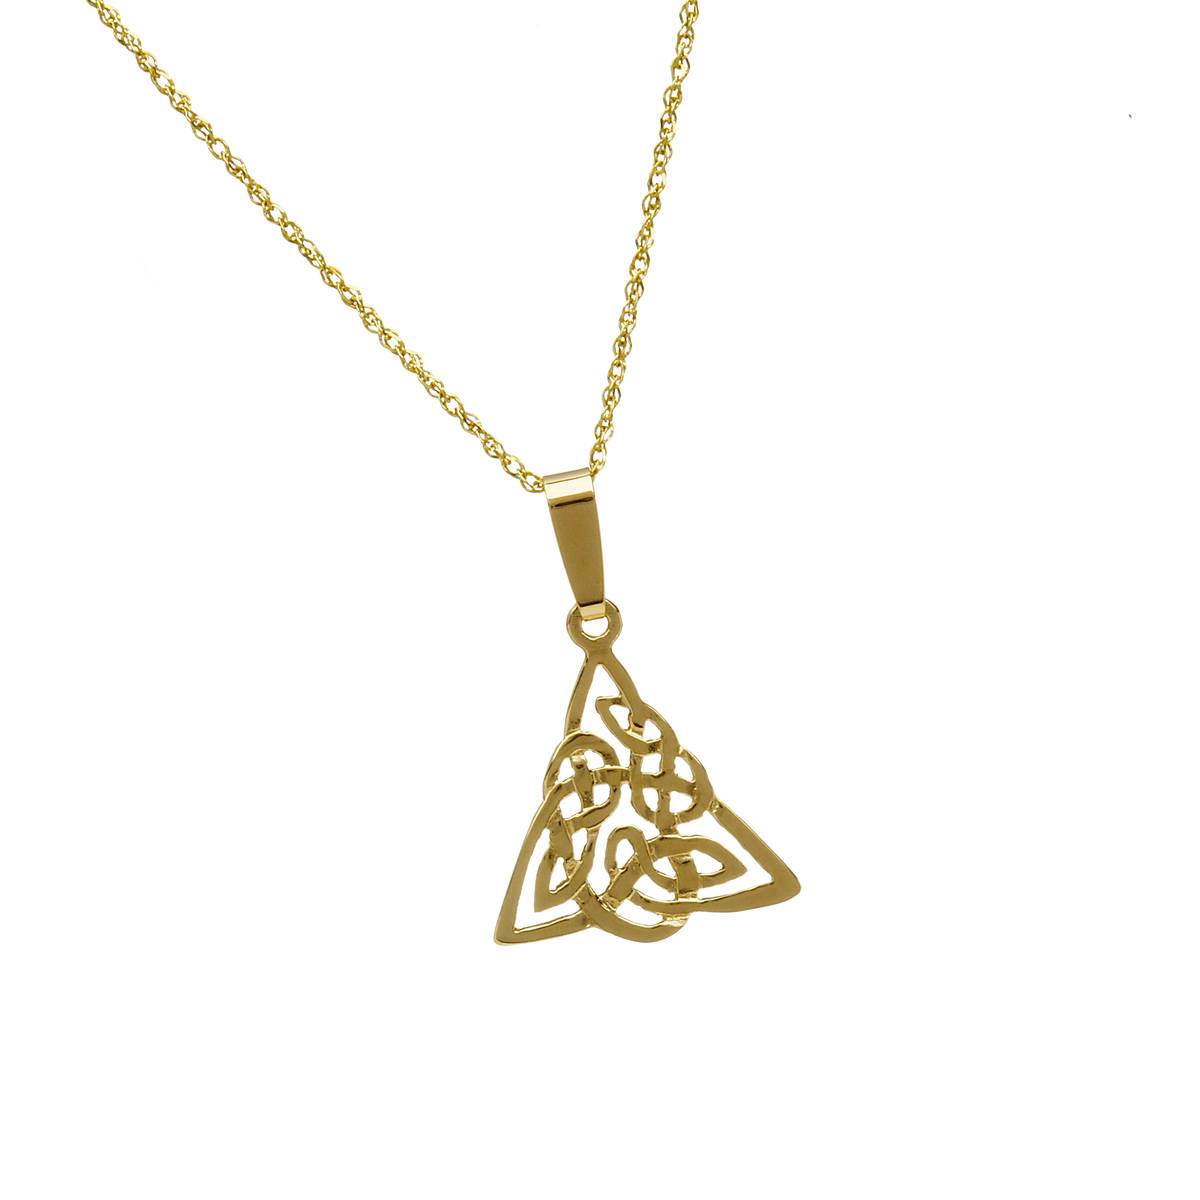 \n10 carat yellow gold Celtic Knot triangular pendant.\nBeautifully filigreed piece of jewellery and also available in white or rose gold as you desire. Just leave a note of your preference in our comment box on checkout.